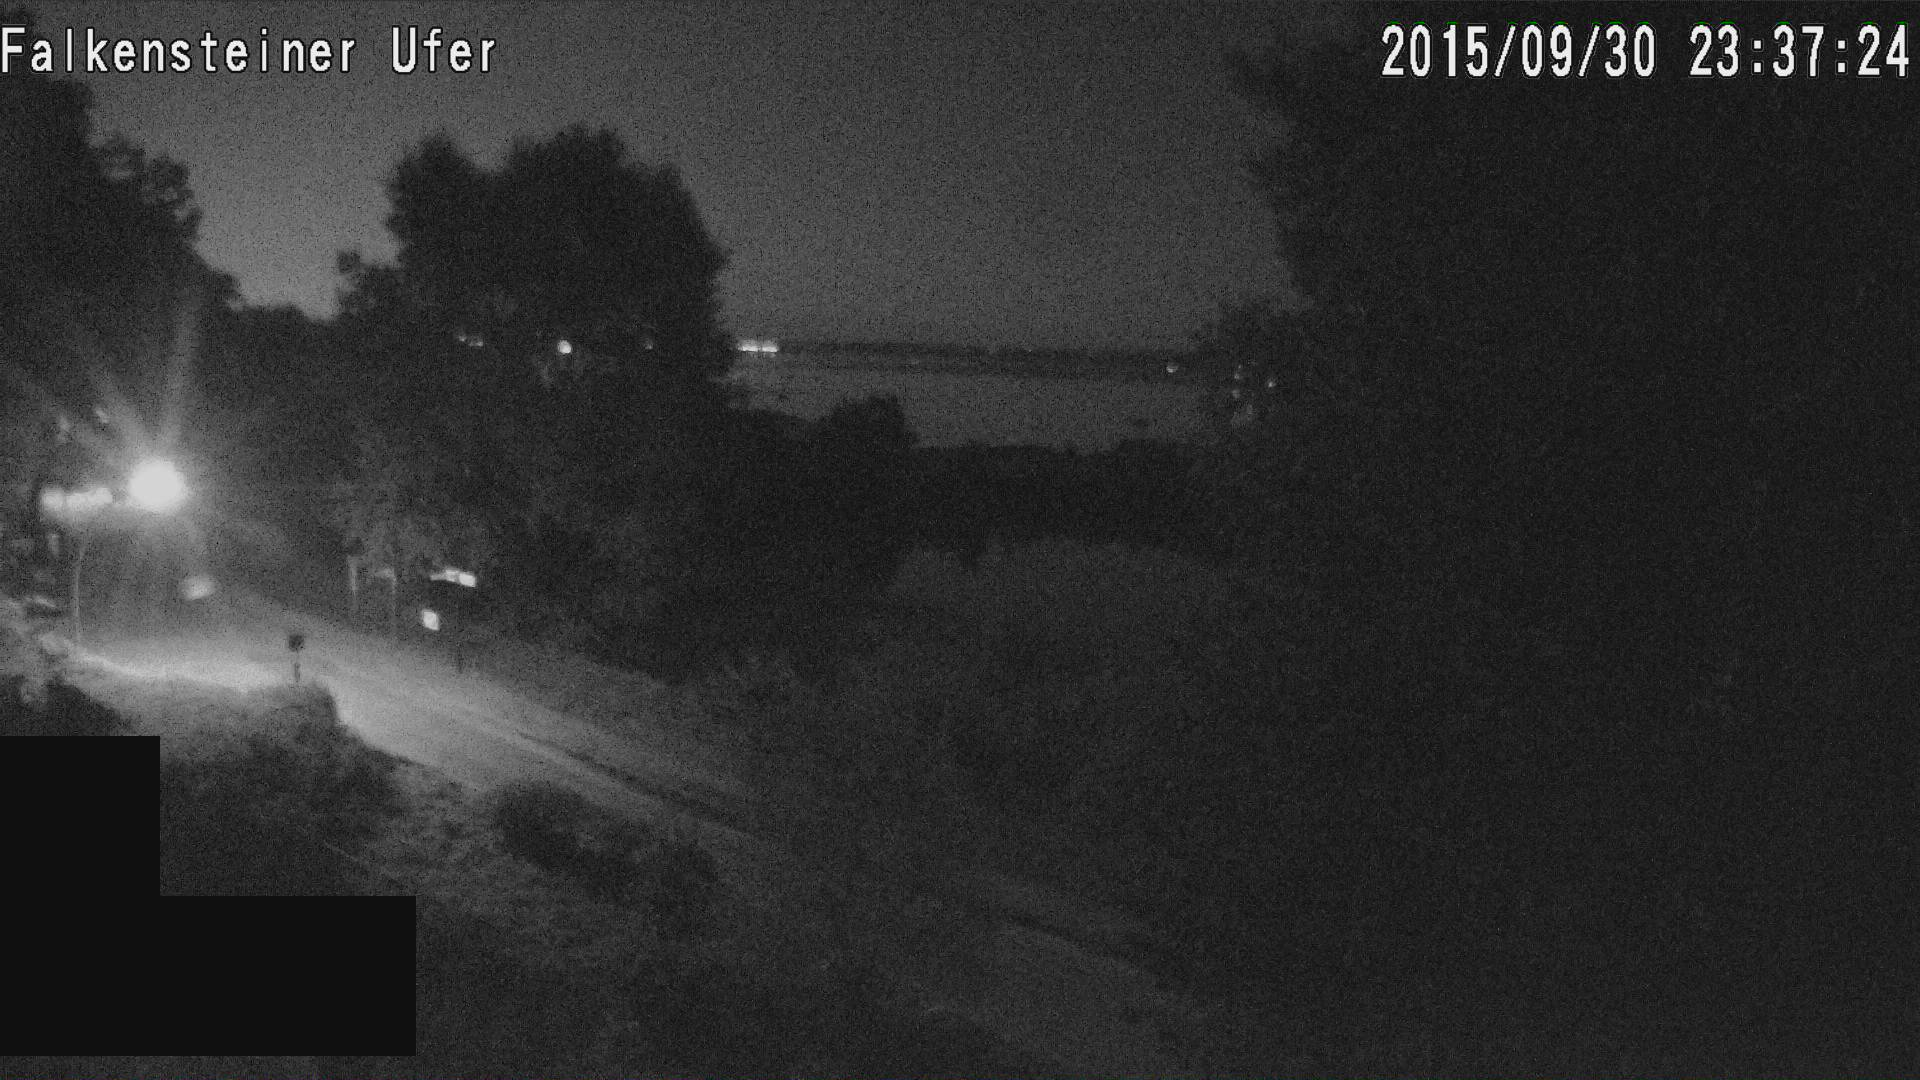 Falkensteiner Ufer Webcam